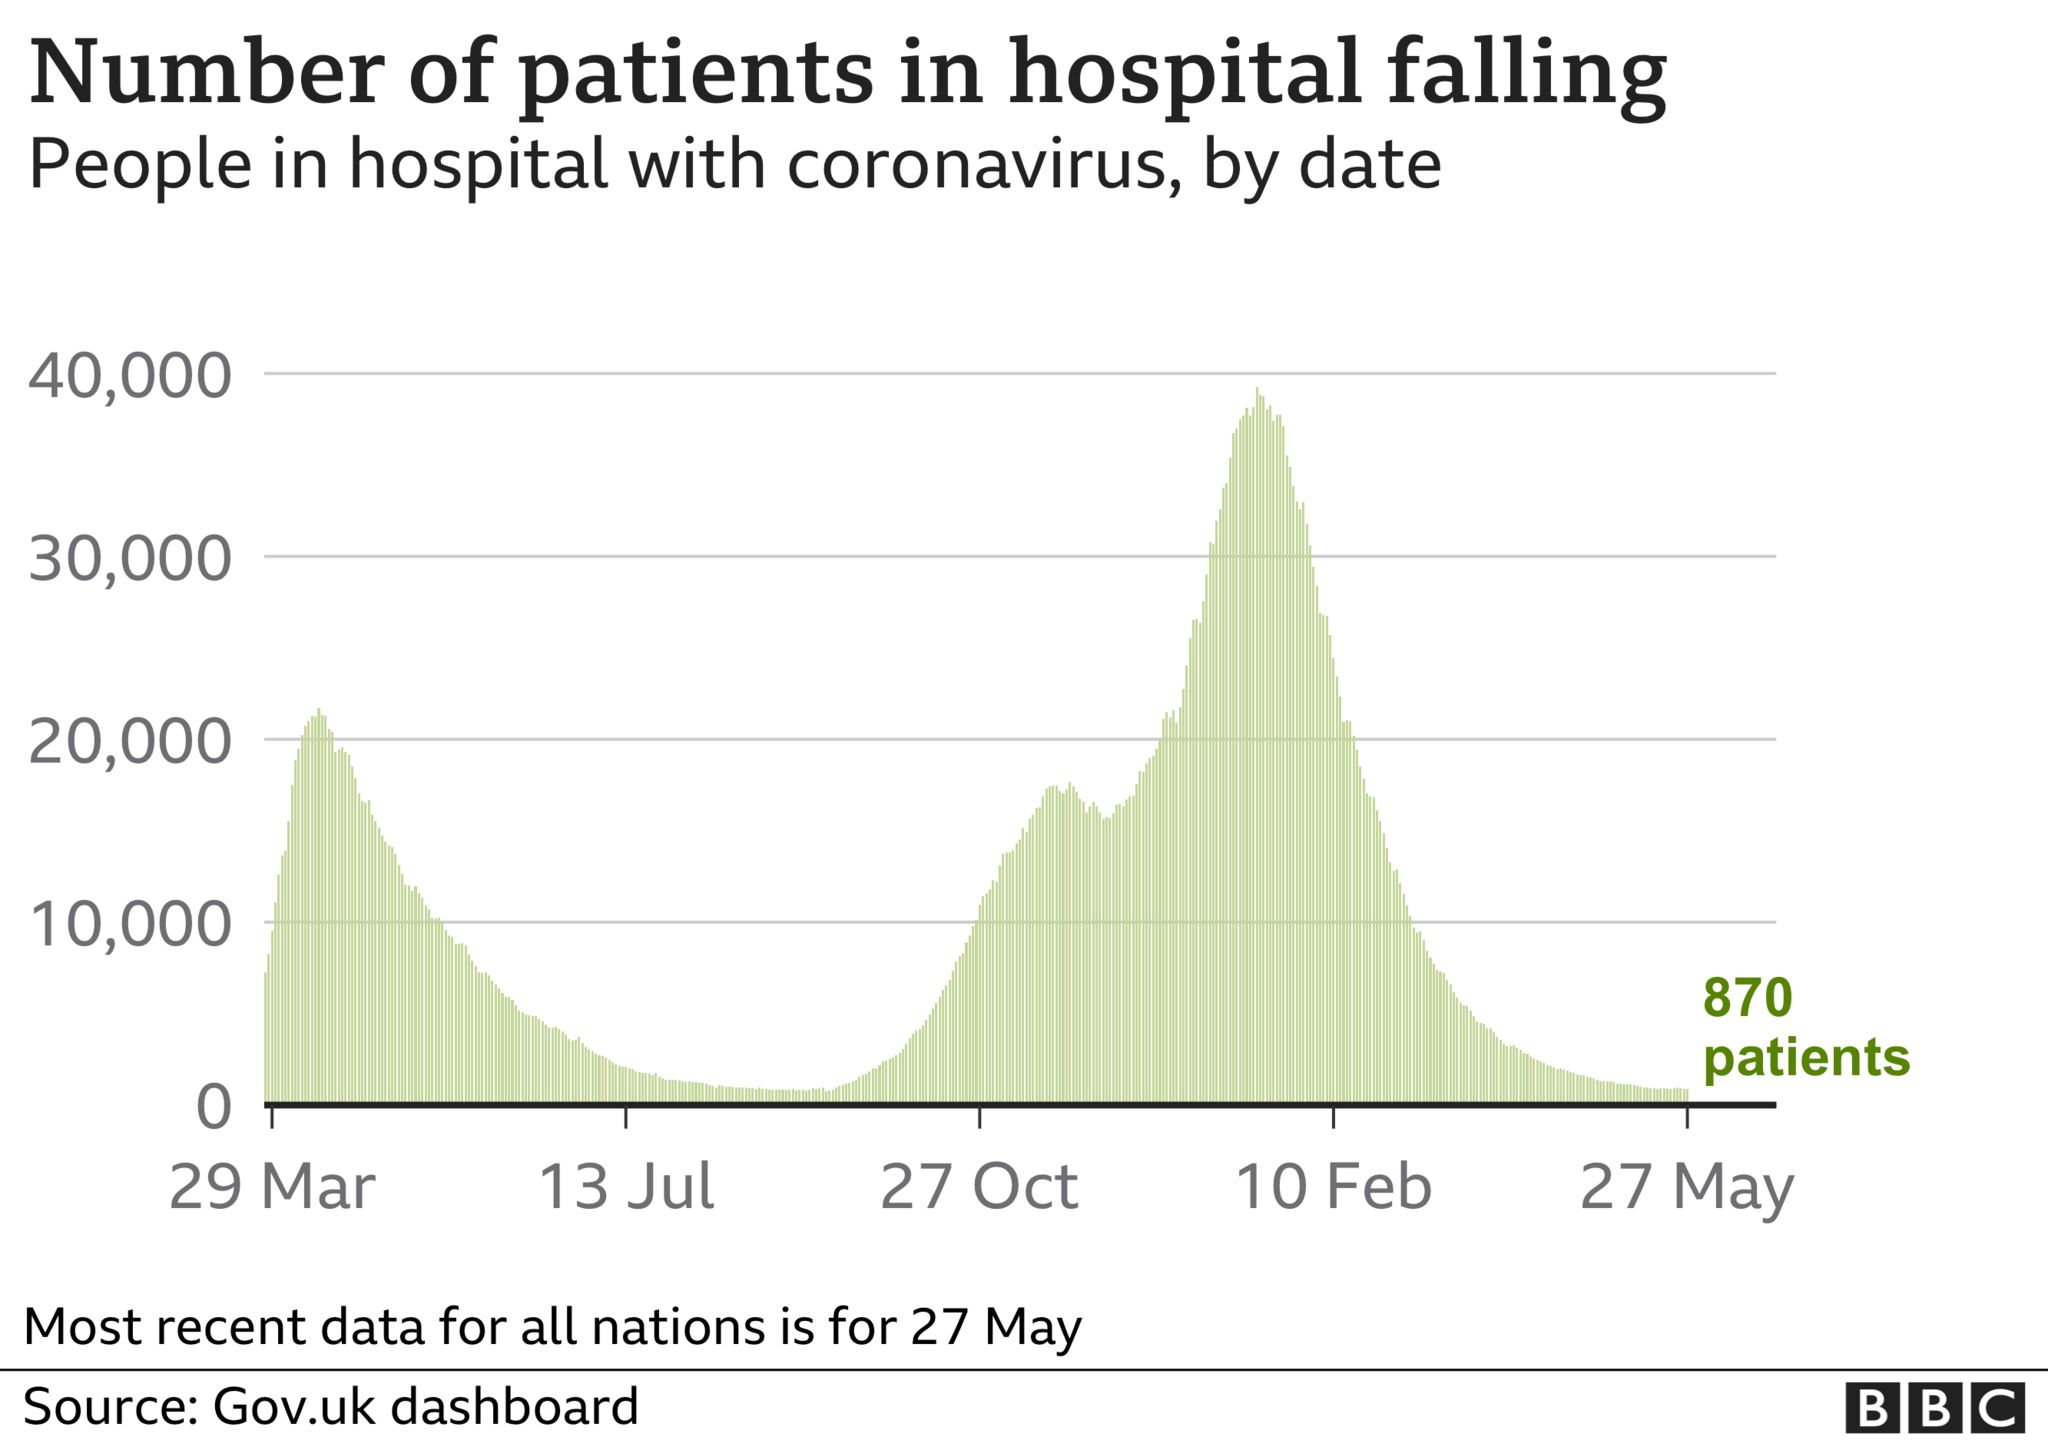 Graph showing the number of patients in hospital is falling